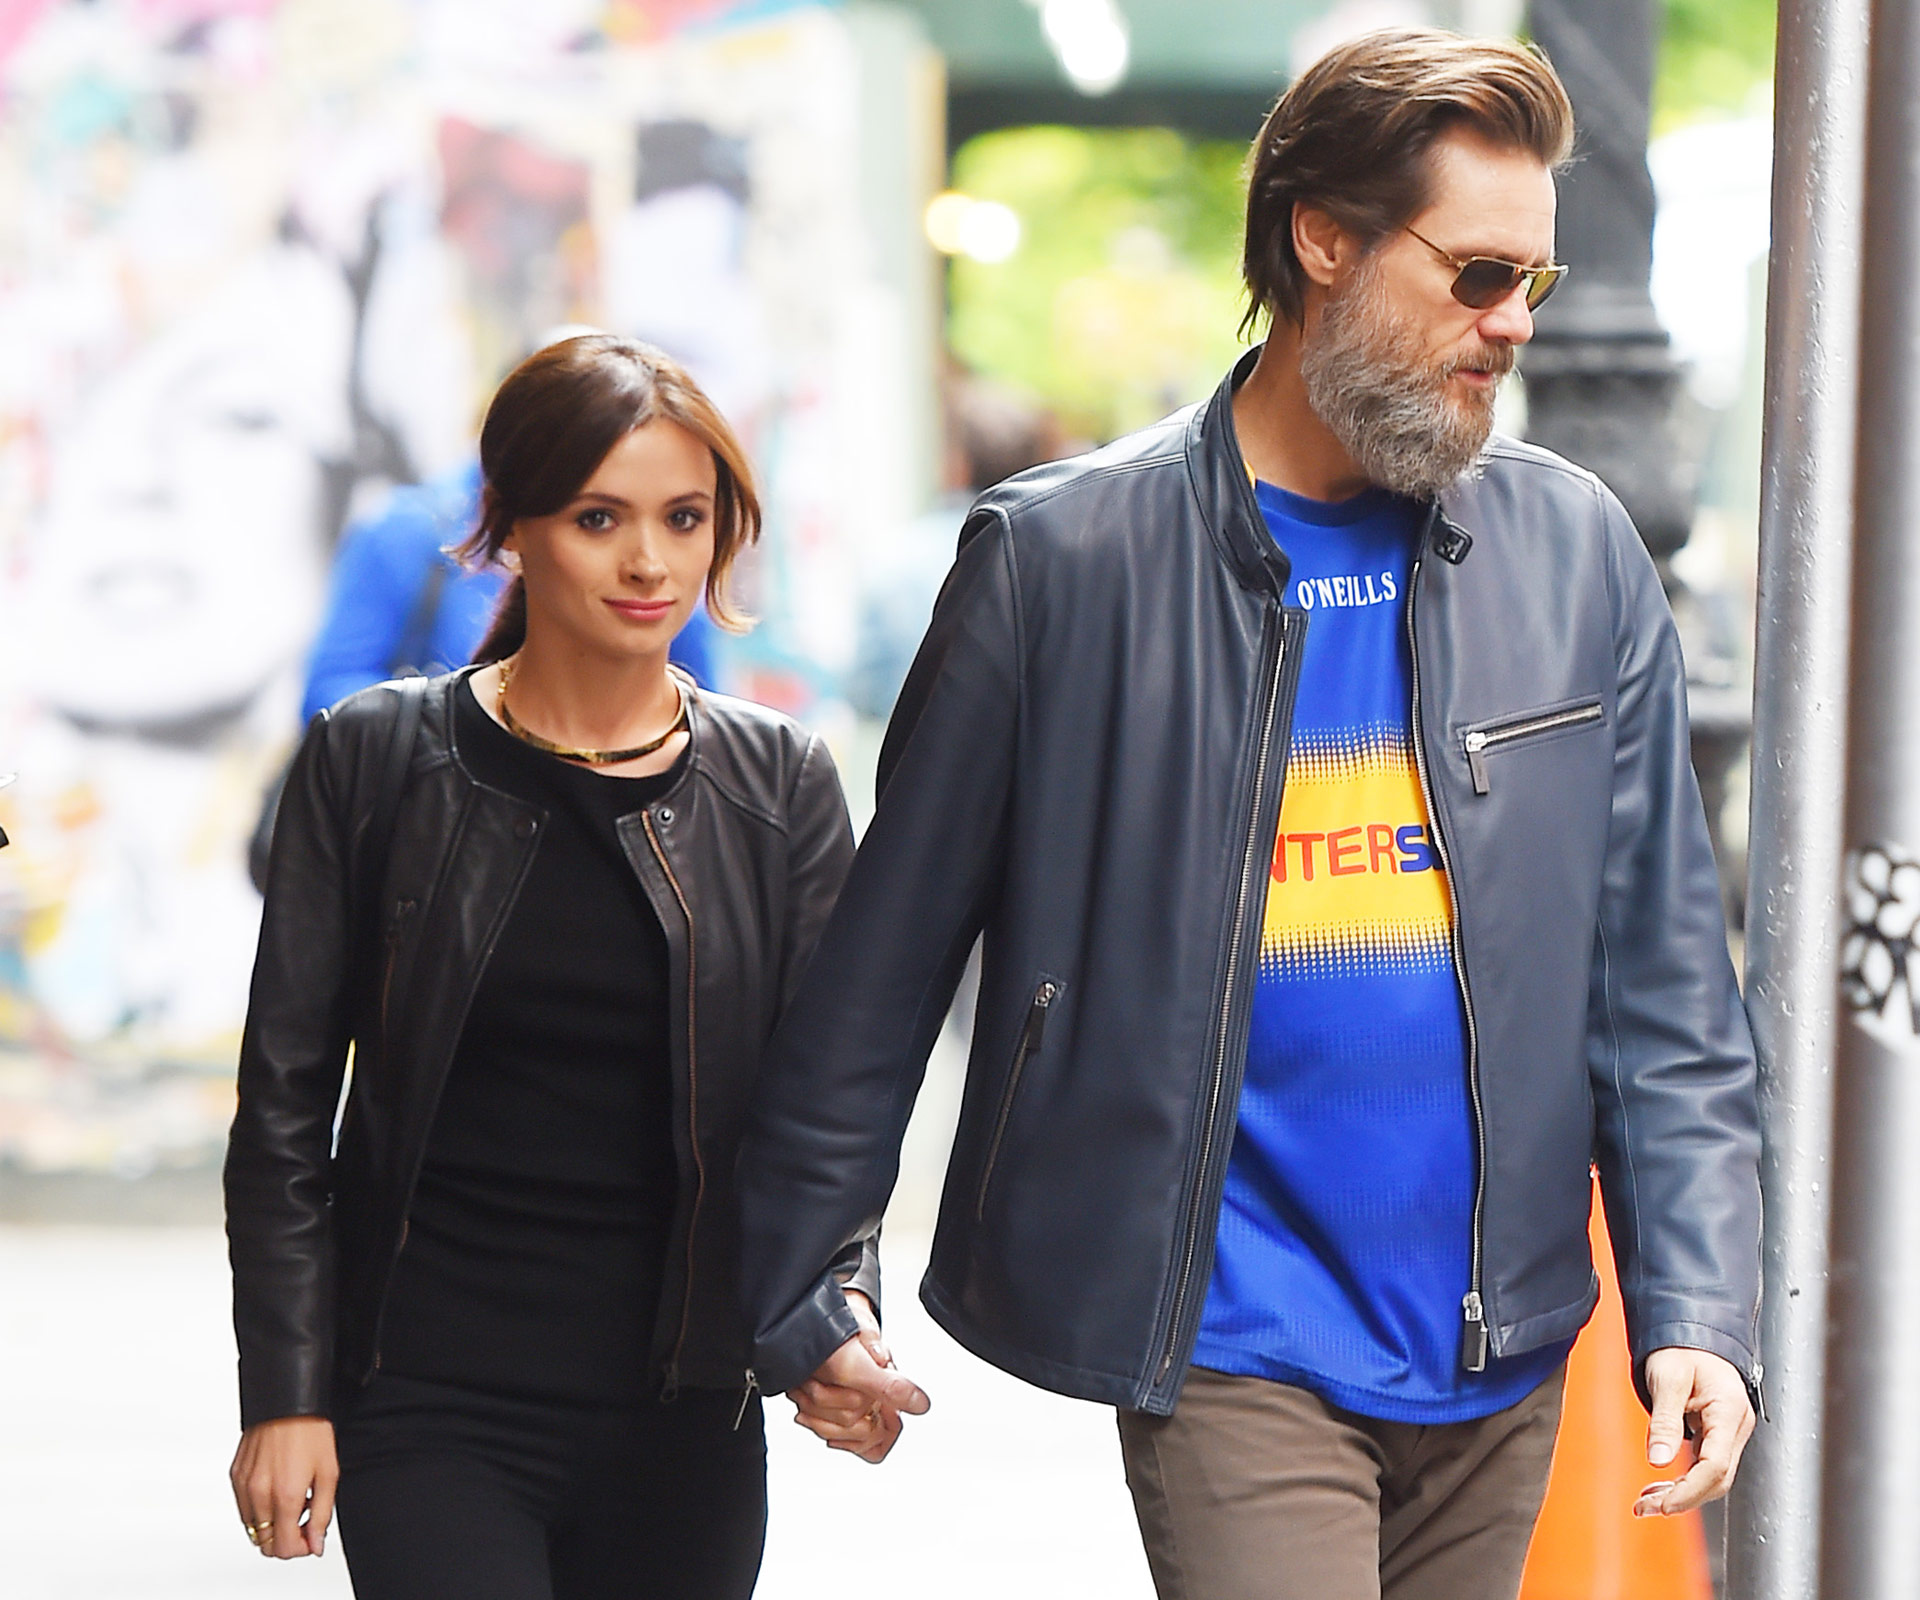 Carrey hit with wrongful death lawsuit from ex's